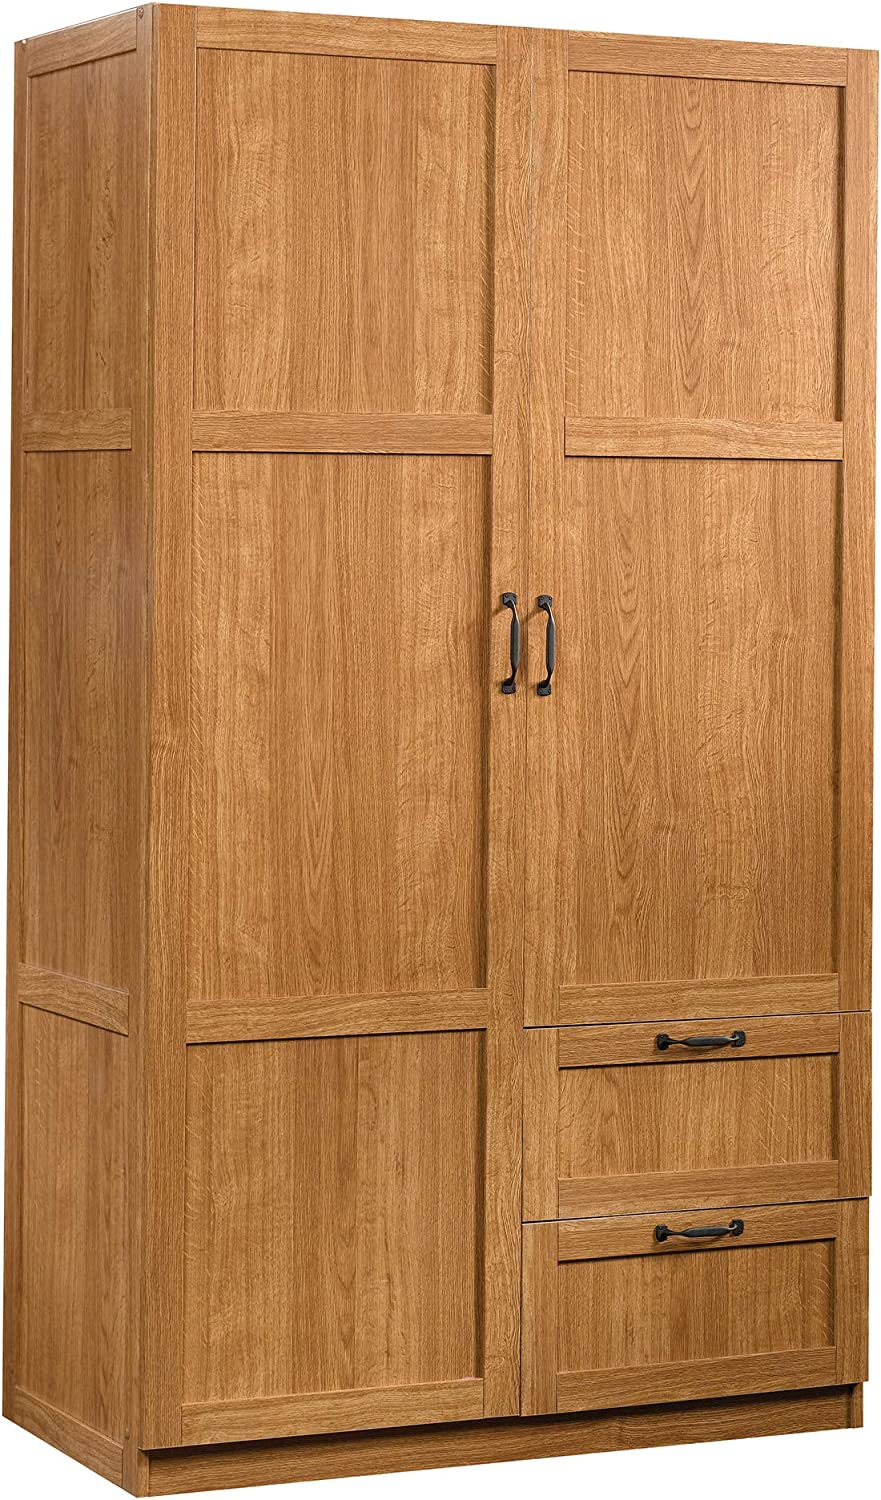 Sauder Miscellaneous Storage Cabinet, L: 40.00